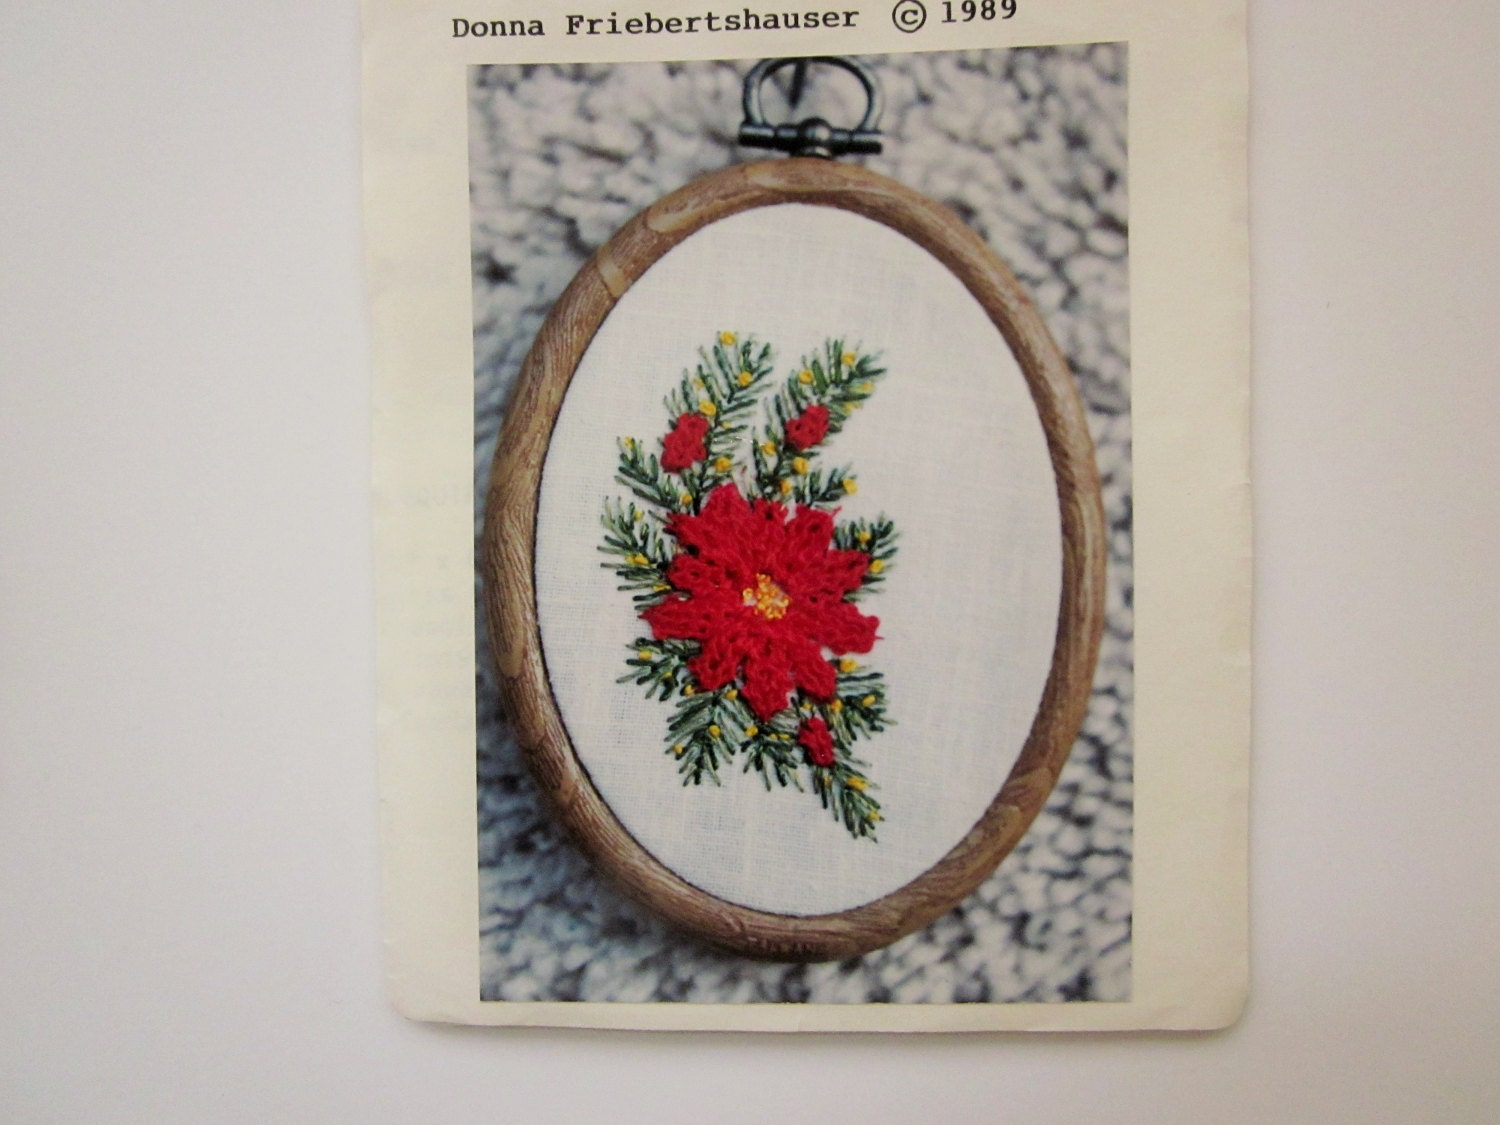 Little needlework kit ruffled poinsetta by donna